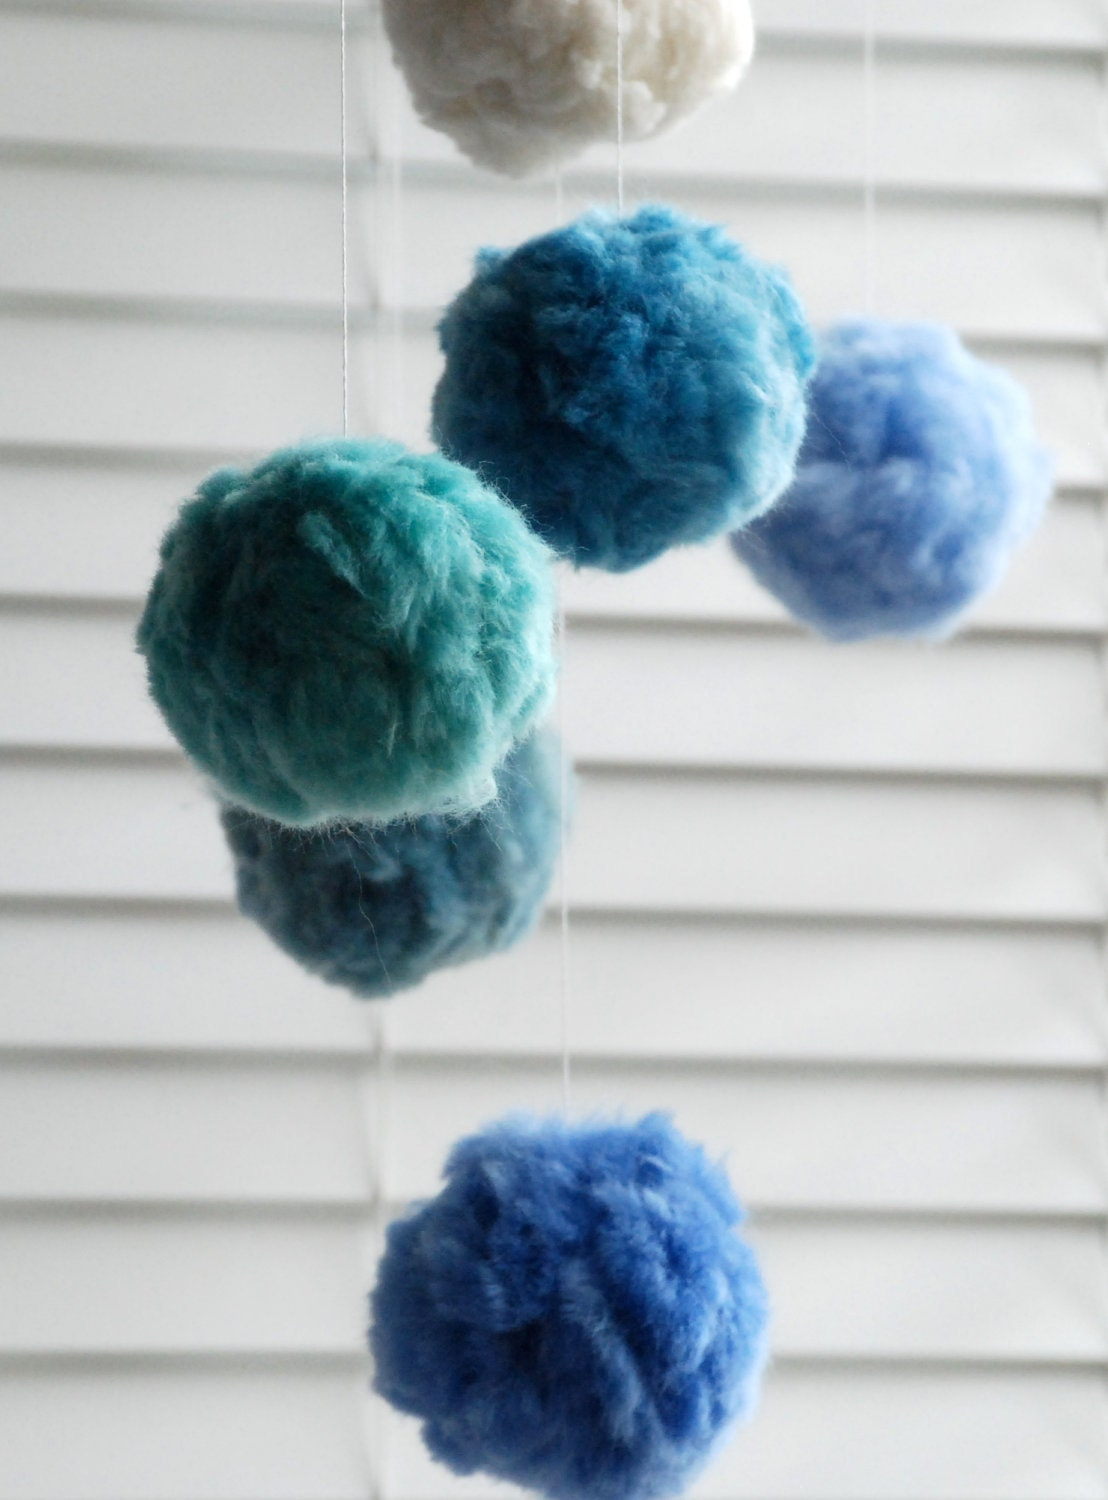 Baby Mobile for Nursery, Pom Pom Mobile - Handmade & Natural Materials in Ocean Colours - MerinoAngel